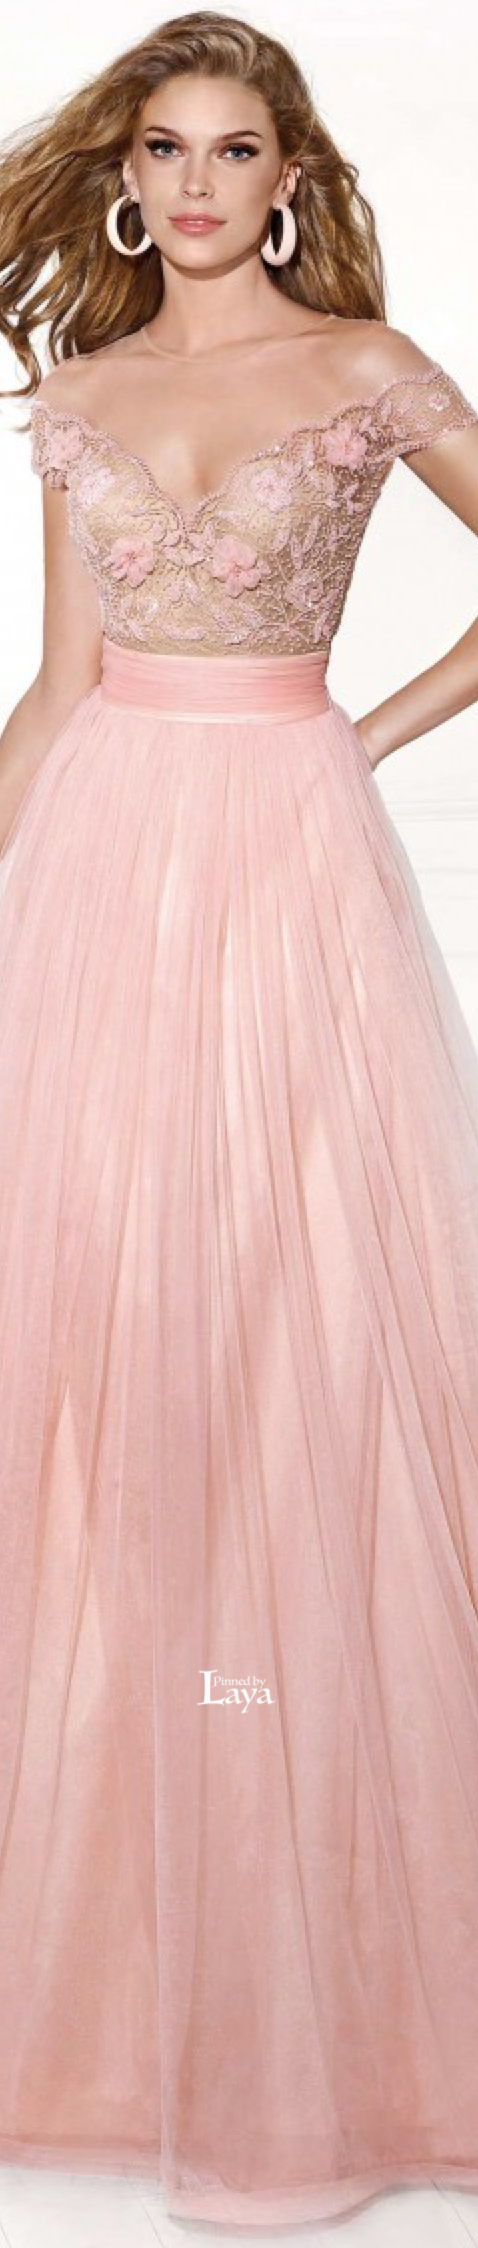 Hilda couture wedding dresses   Tarik Ediz   So delicate u creative  Pinterest  Gowns High